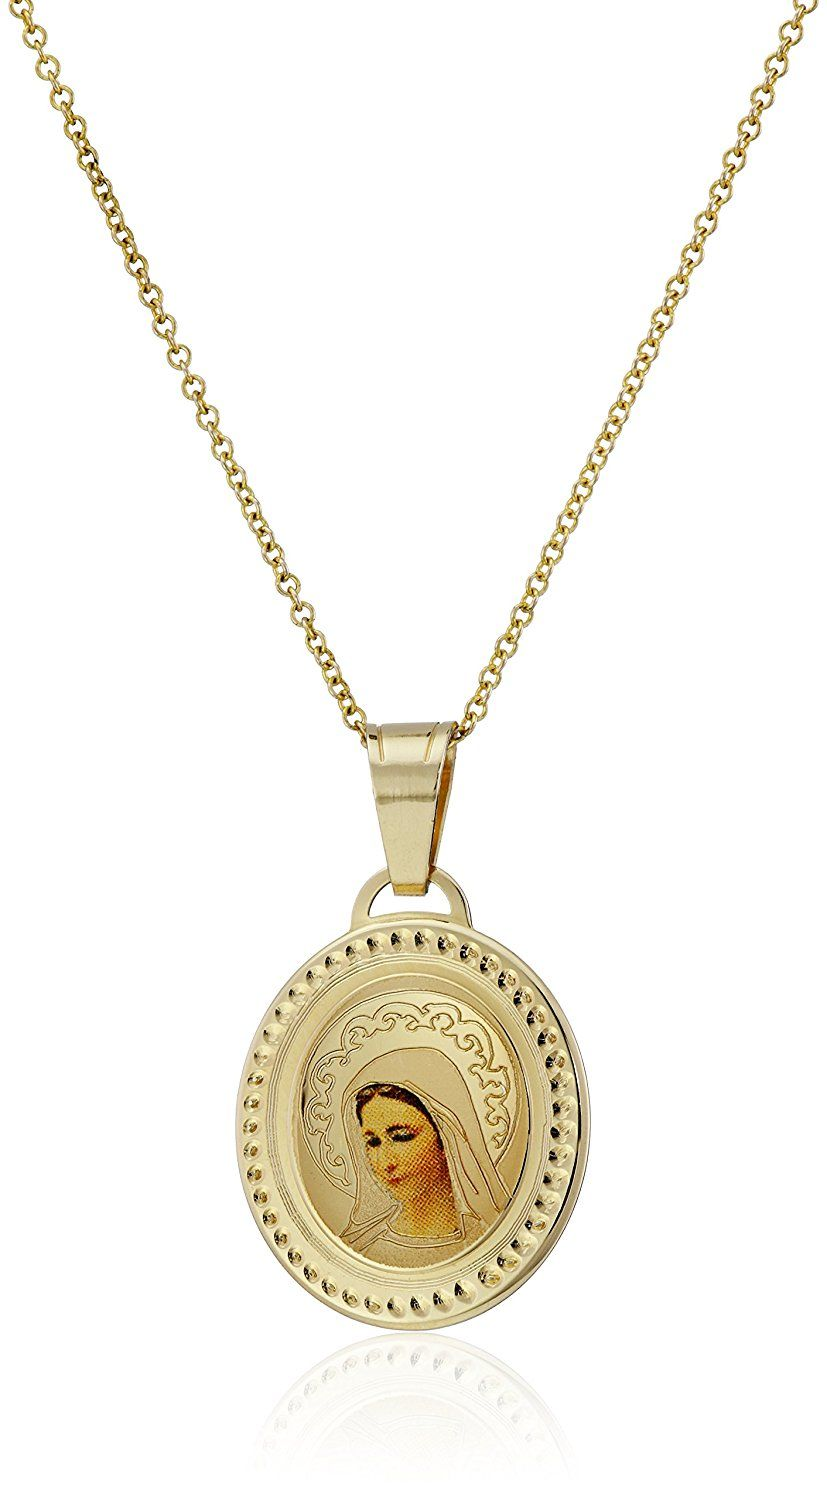 K yellow gold blessed virgin mary oval picture medal necklace